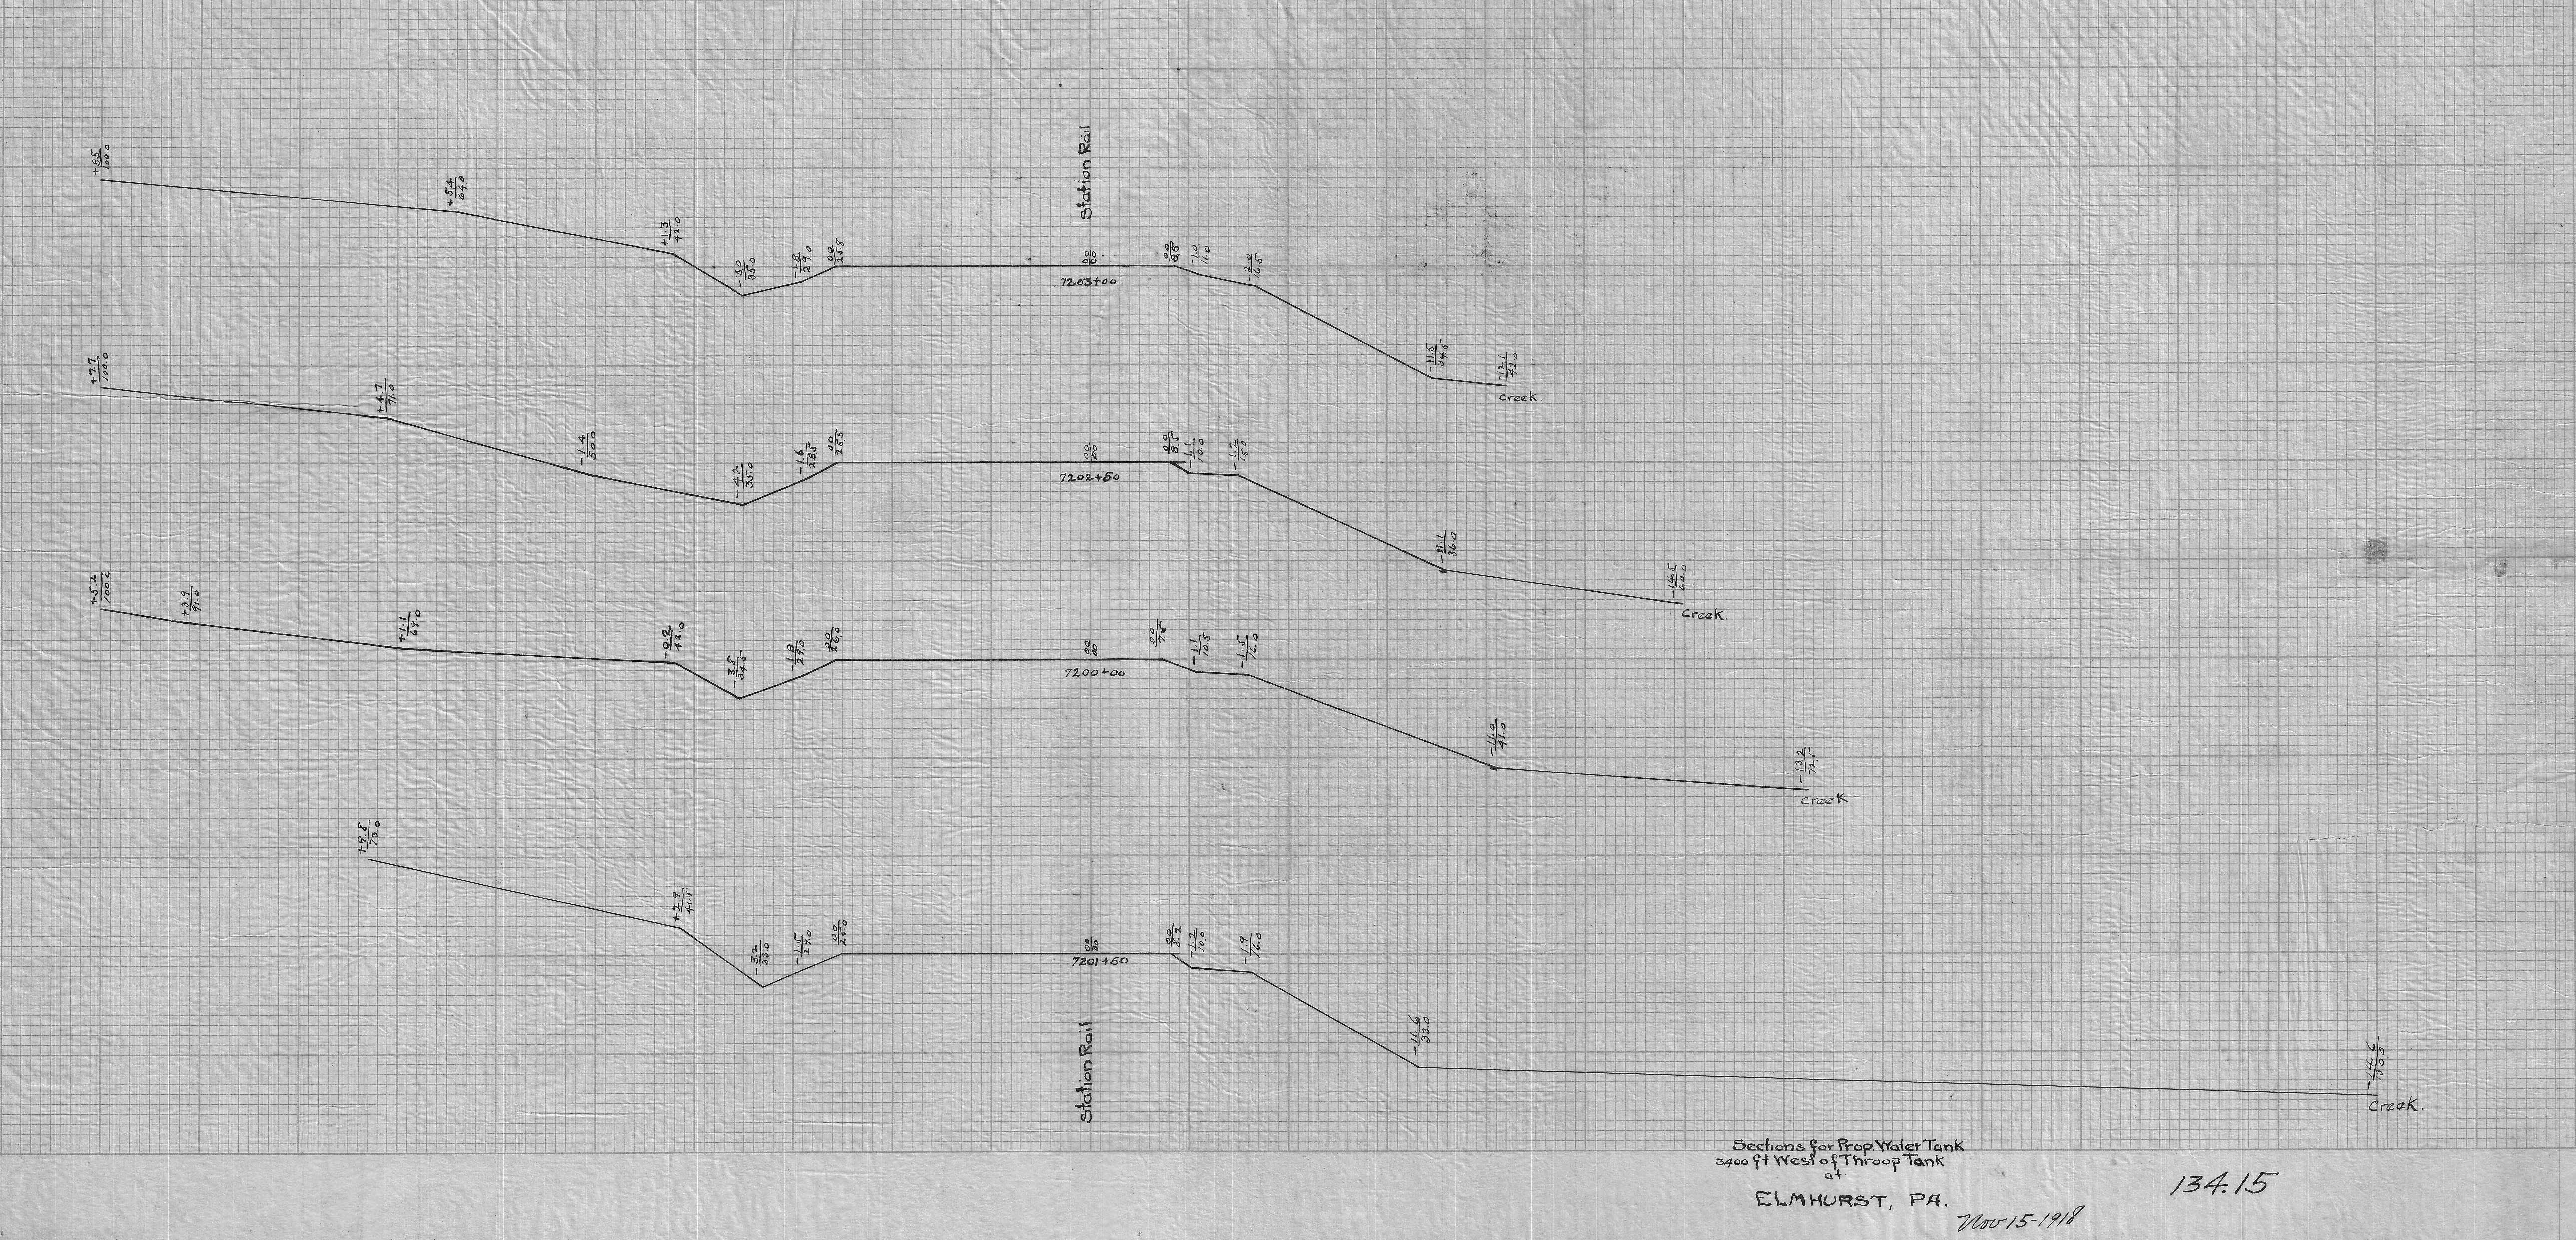 File:134-15.PJ--Section for proposed water tank--3400-feet ...